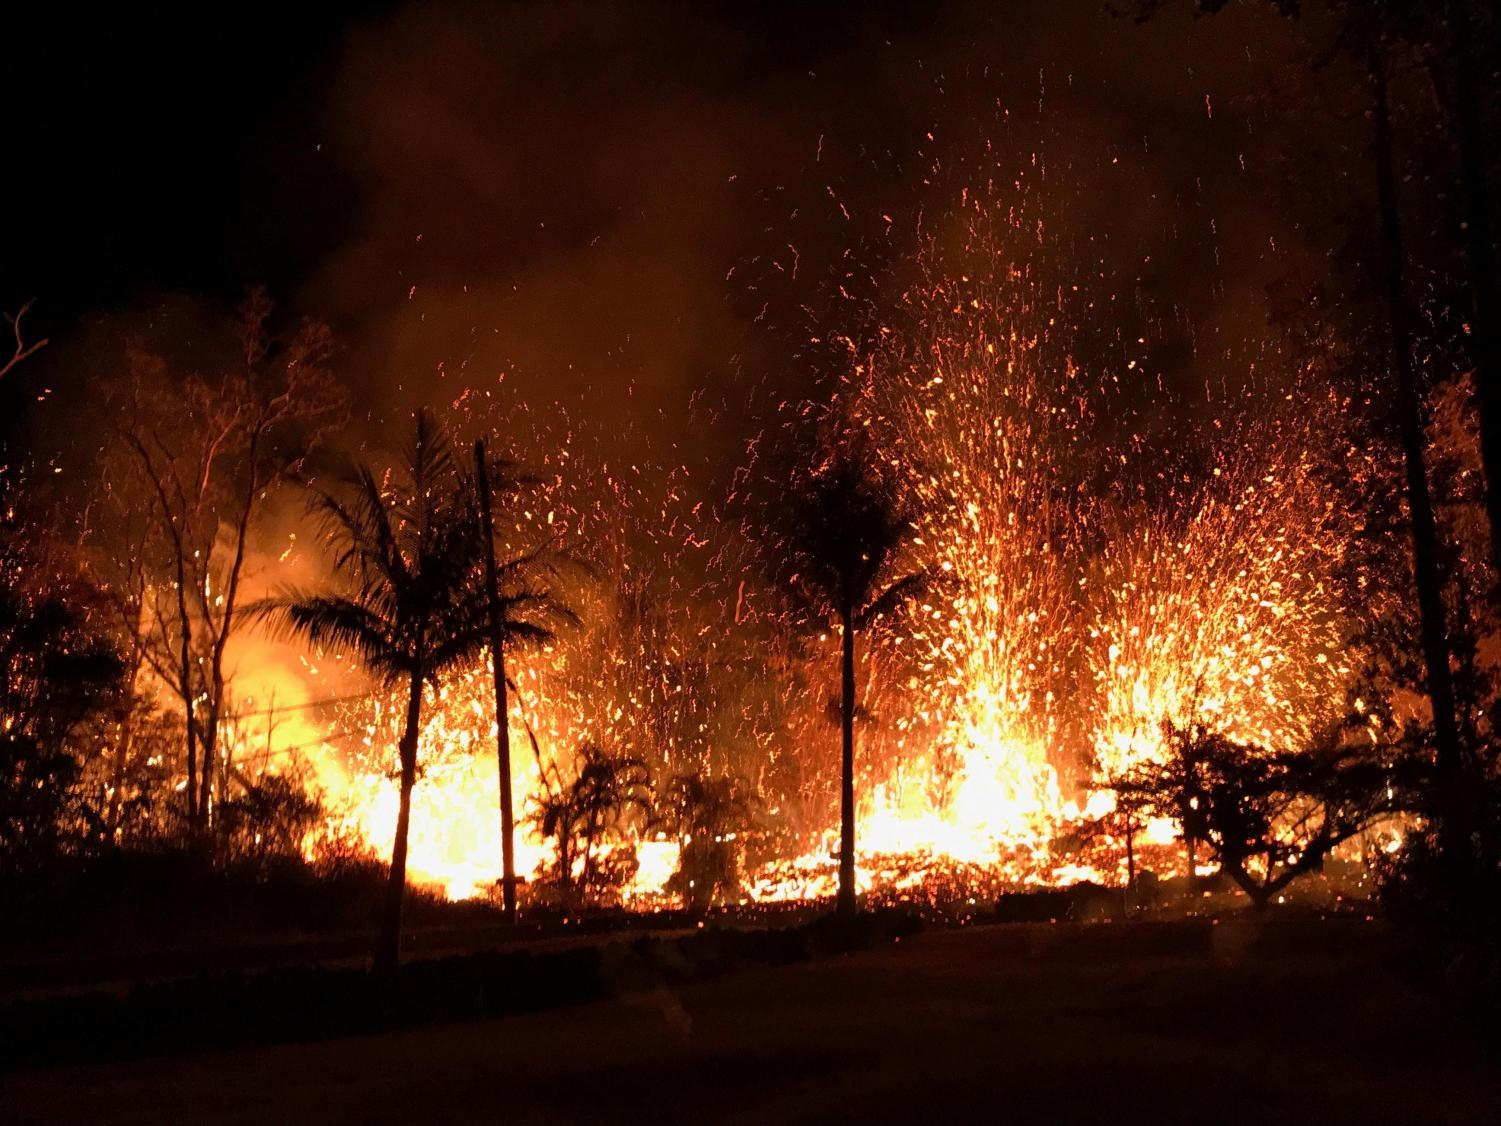 That of the Kilauea eruption is burning down trees and land in which was once vital to life on Hawaii.